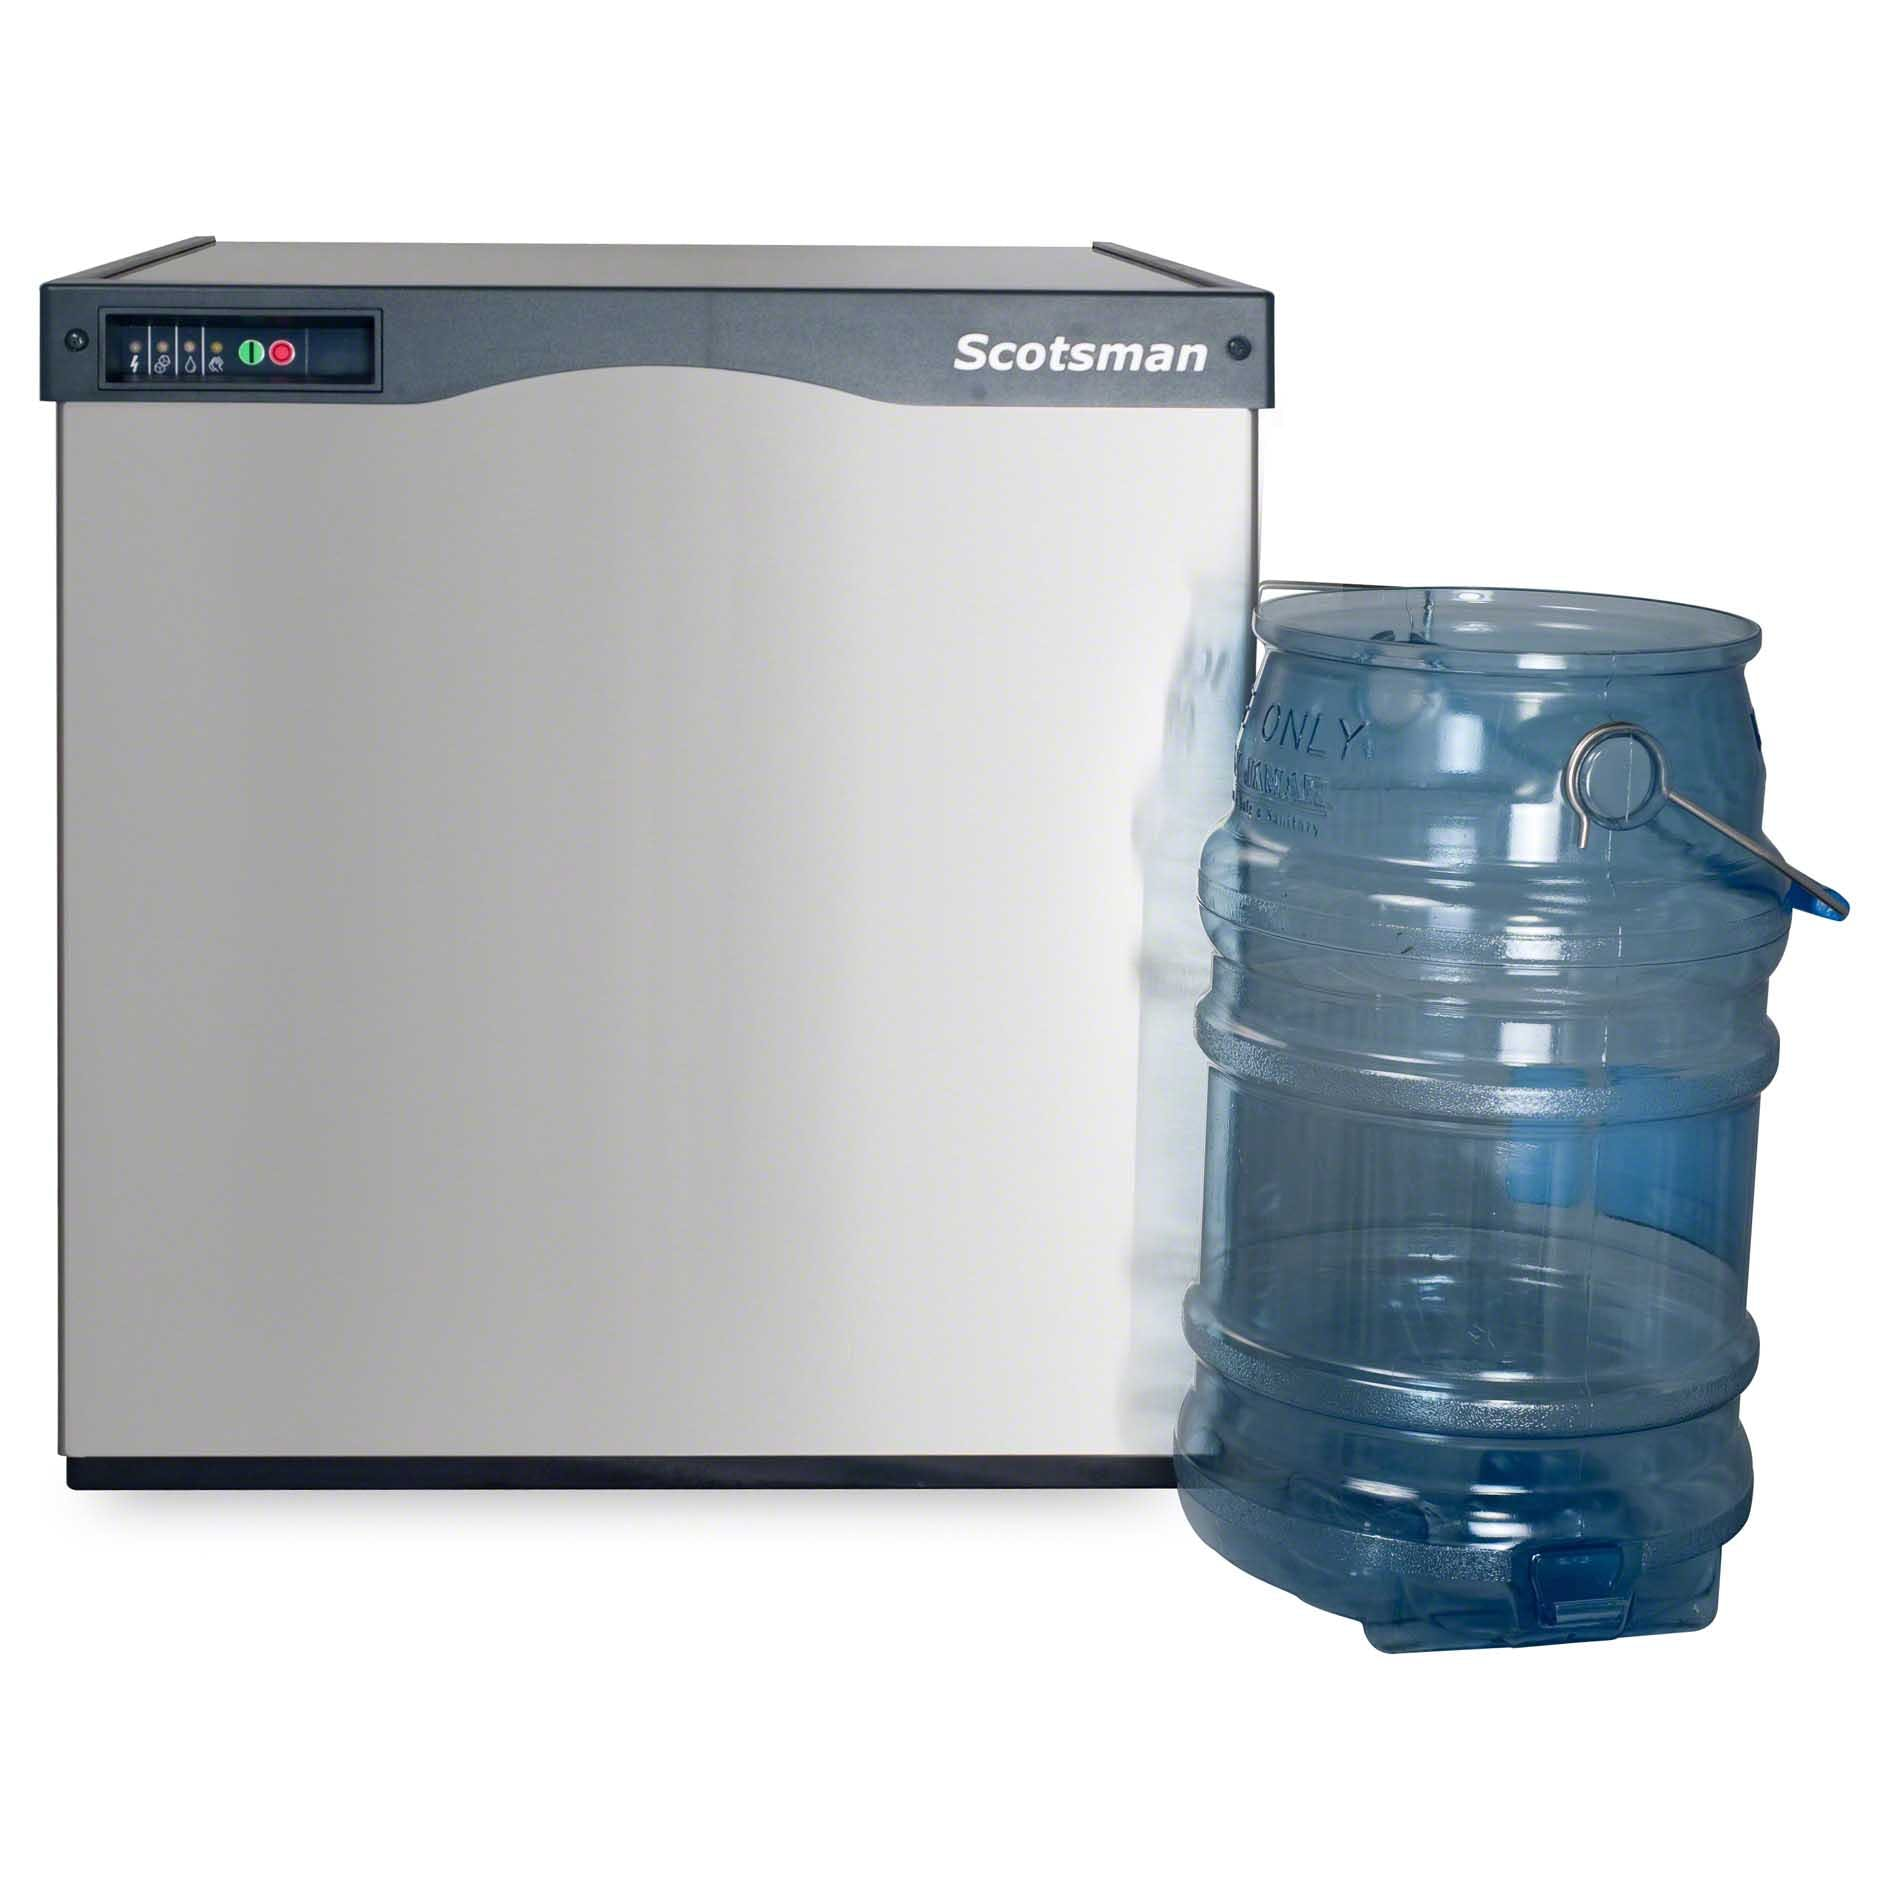 Scotsman - N0622R-1A 660 lb Nugget Ice Machine - Prodigy Series Ice machine sold by Food Service Warehouse